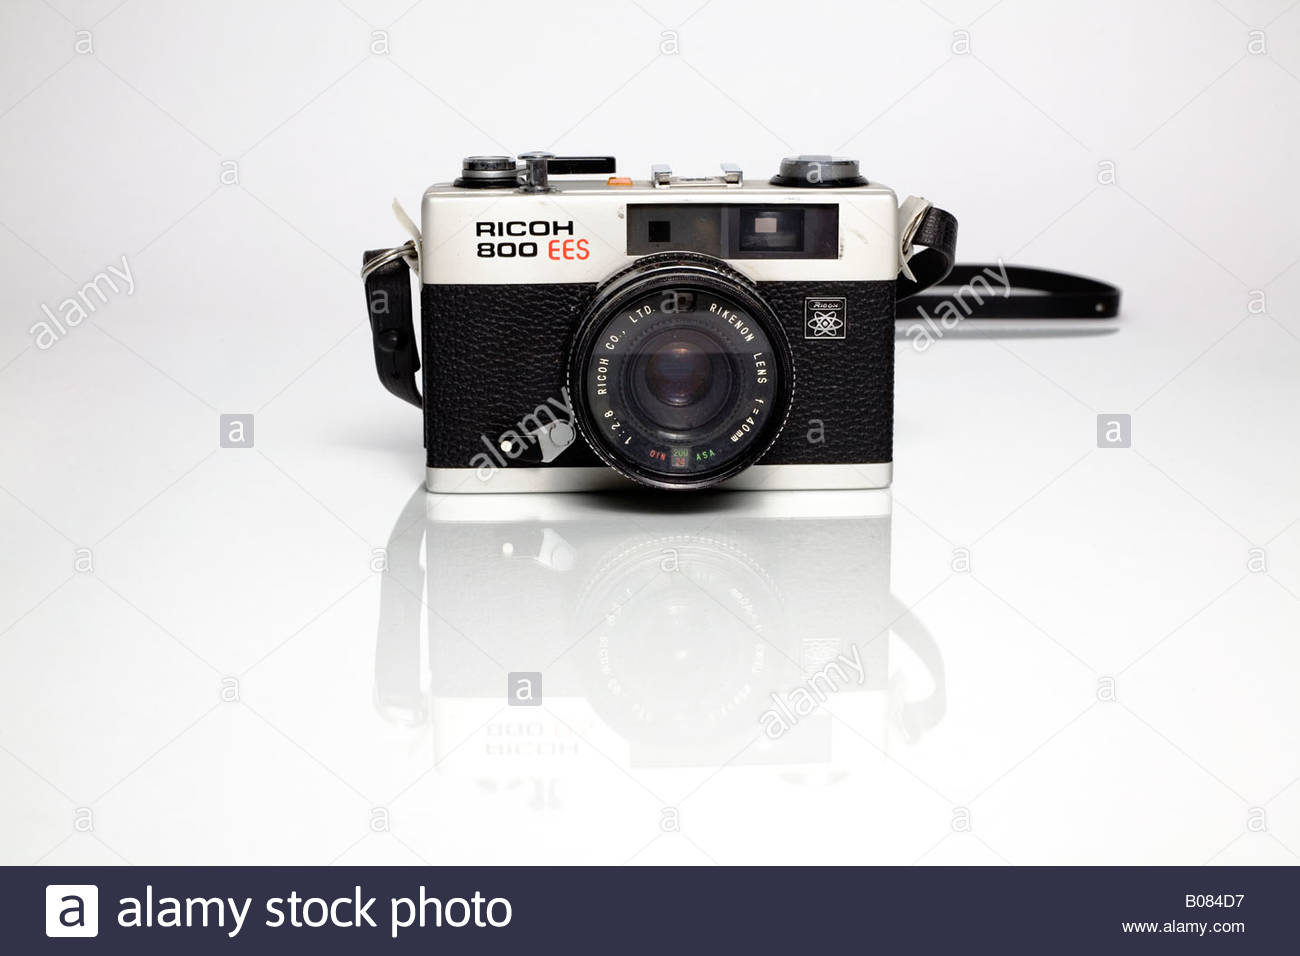 Ricoh 800 Vintage Film Camera with Strap on White Background Stock 1300x956